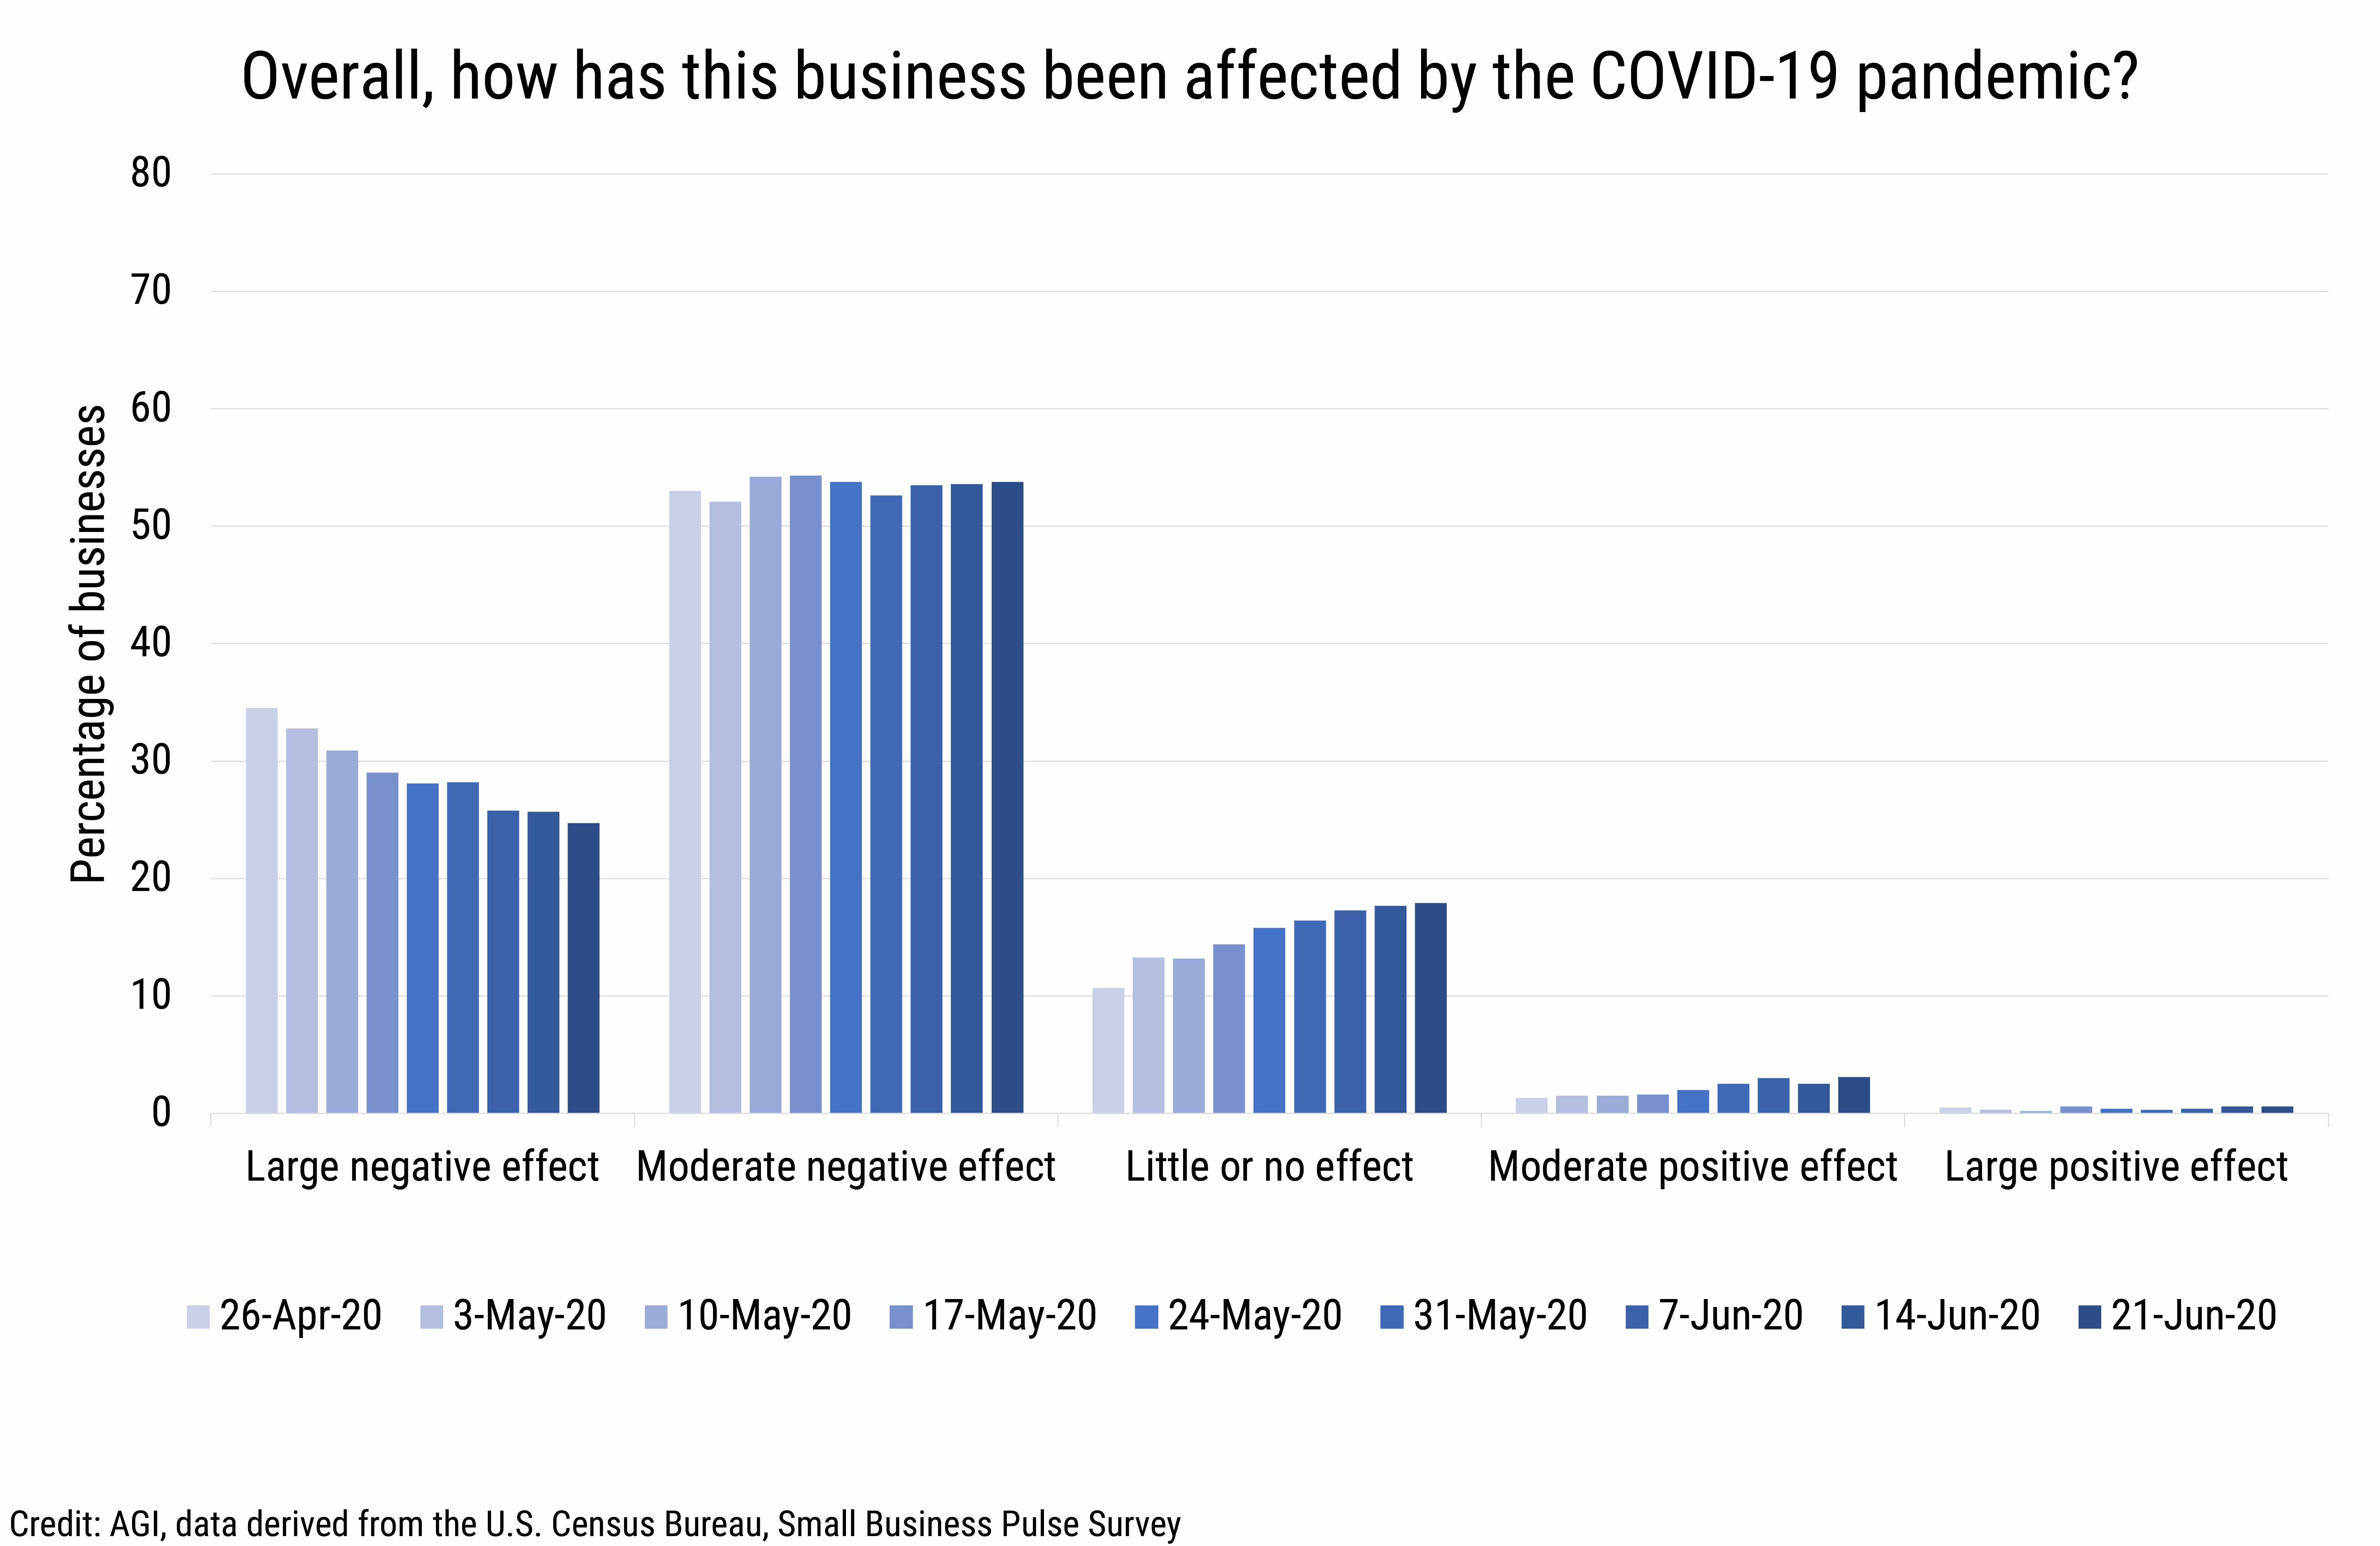 DB_2020-014 chart 01: Overall COVID-19 impacts to businesses (credit: AGI, data derived from the U.S. Census Bureau, Small Business Pulse Survey)